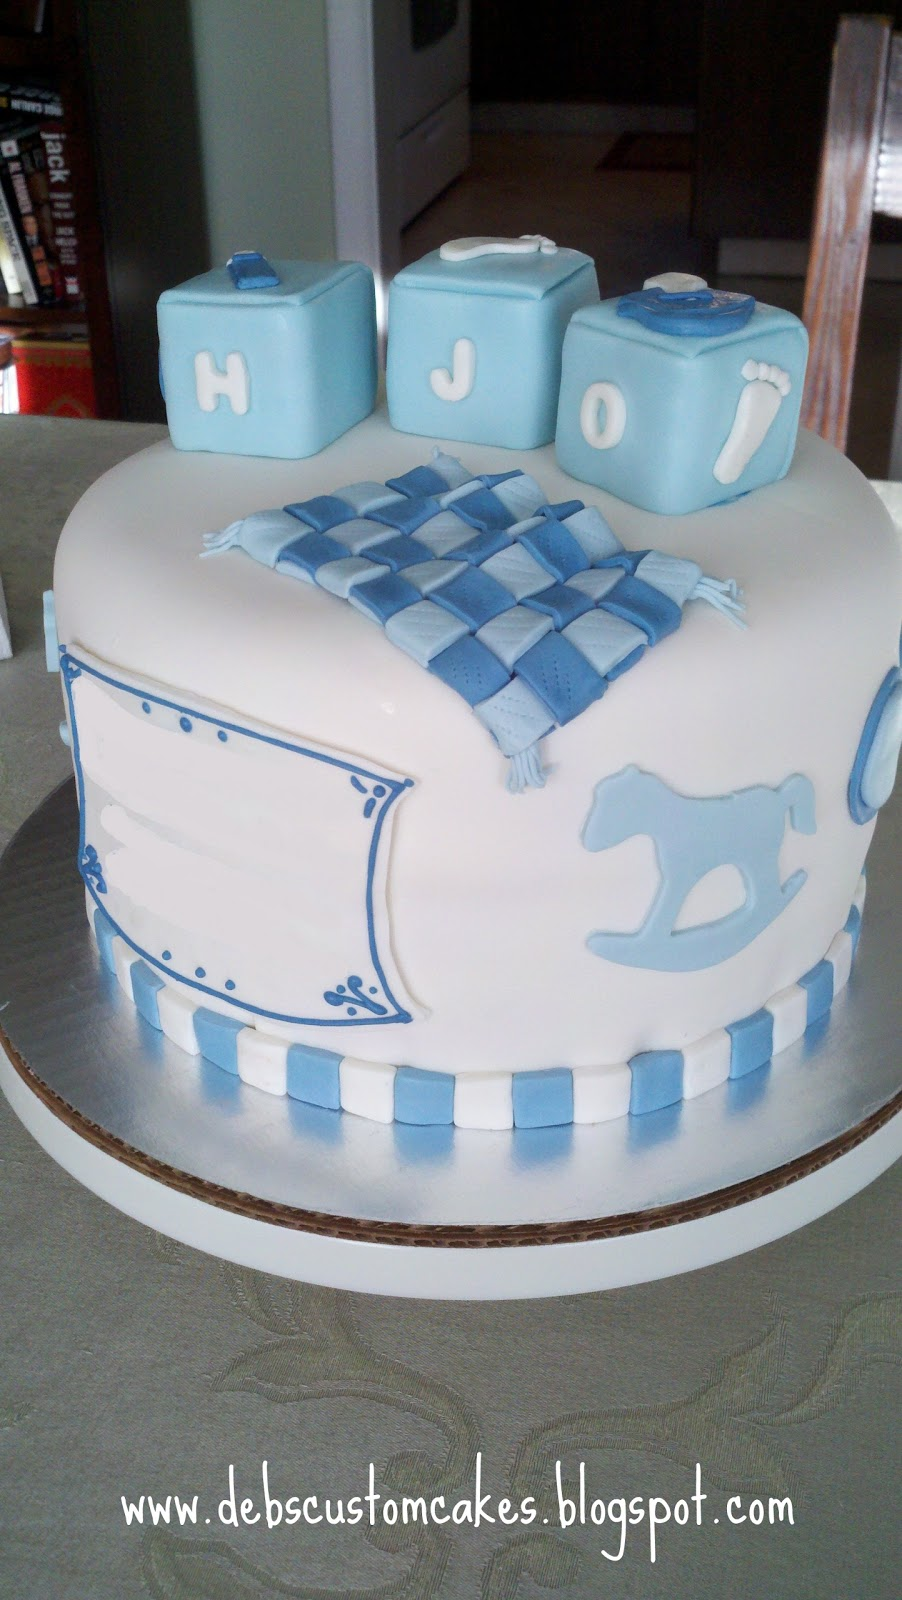 Cake Images For Boys : Deb s Custom Cakes: January 2011